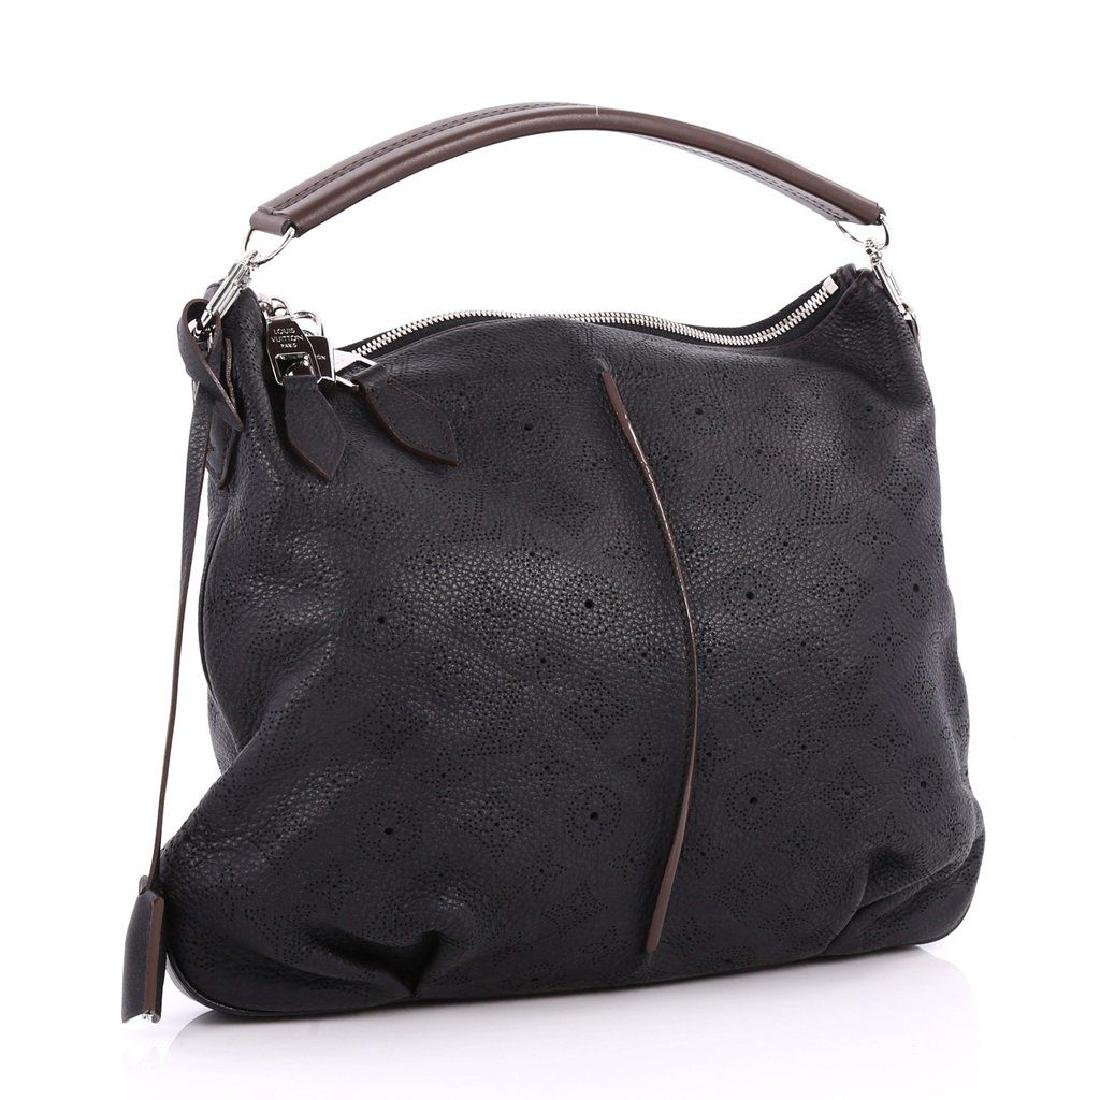 Louis Vuitton Selene Mahina Handbag Pm Black Brown - 4